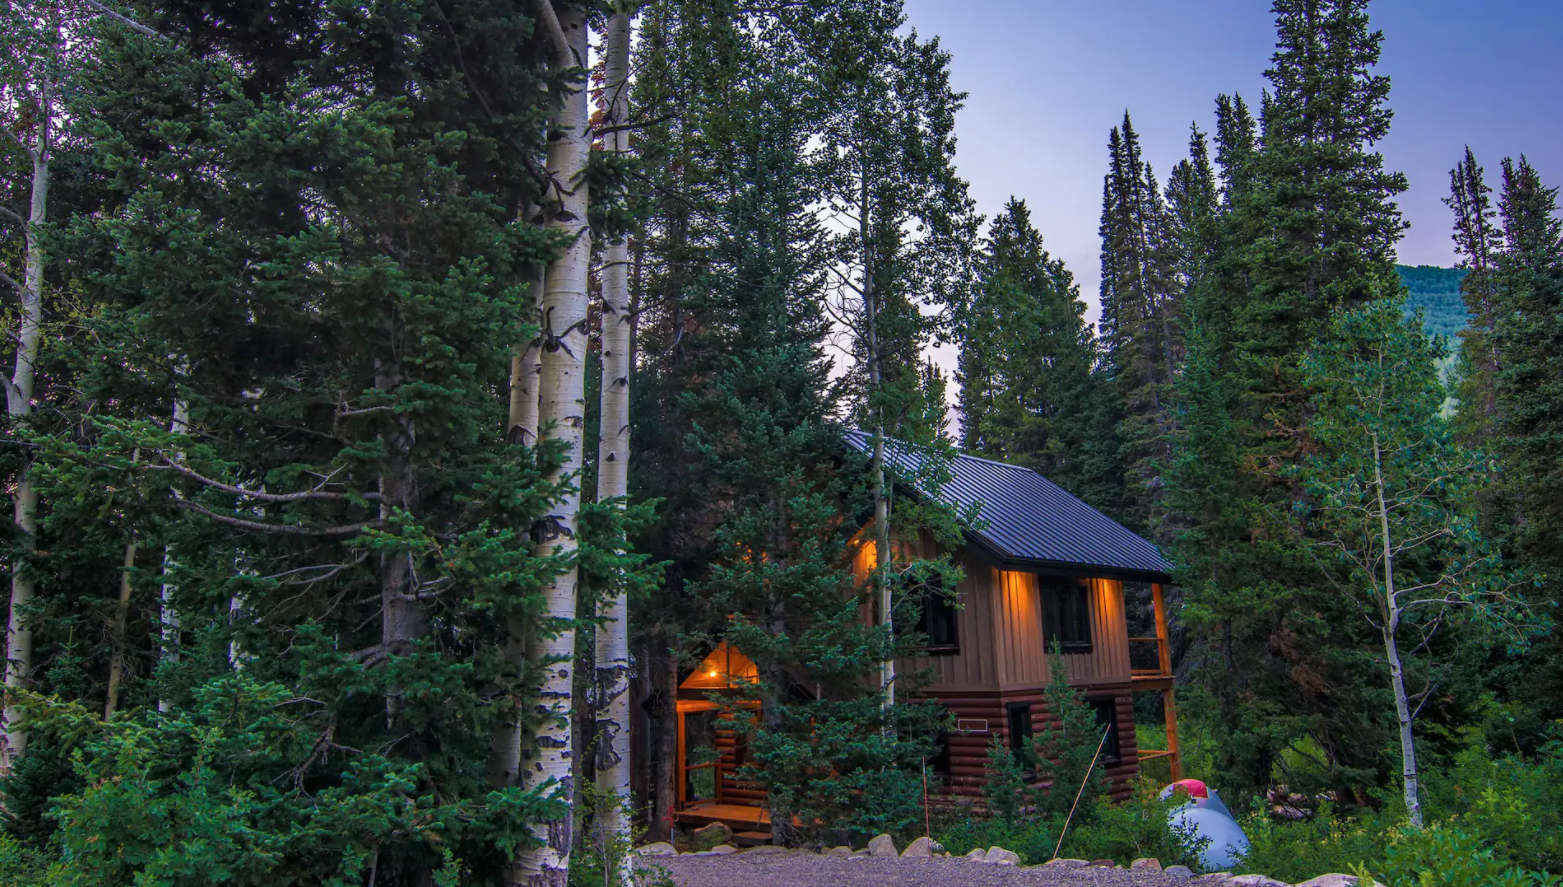 You'll Be Surrounded By A Lush Forest At This Pretty Mountain Cabin At Solitude Resort In Utah